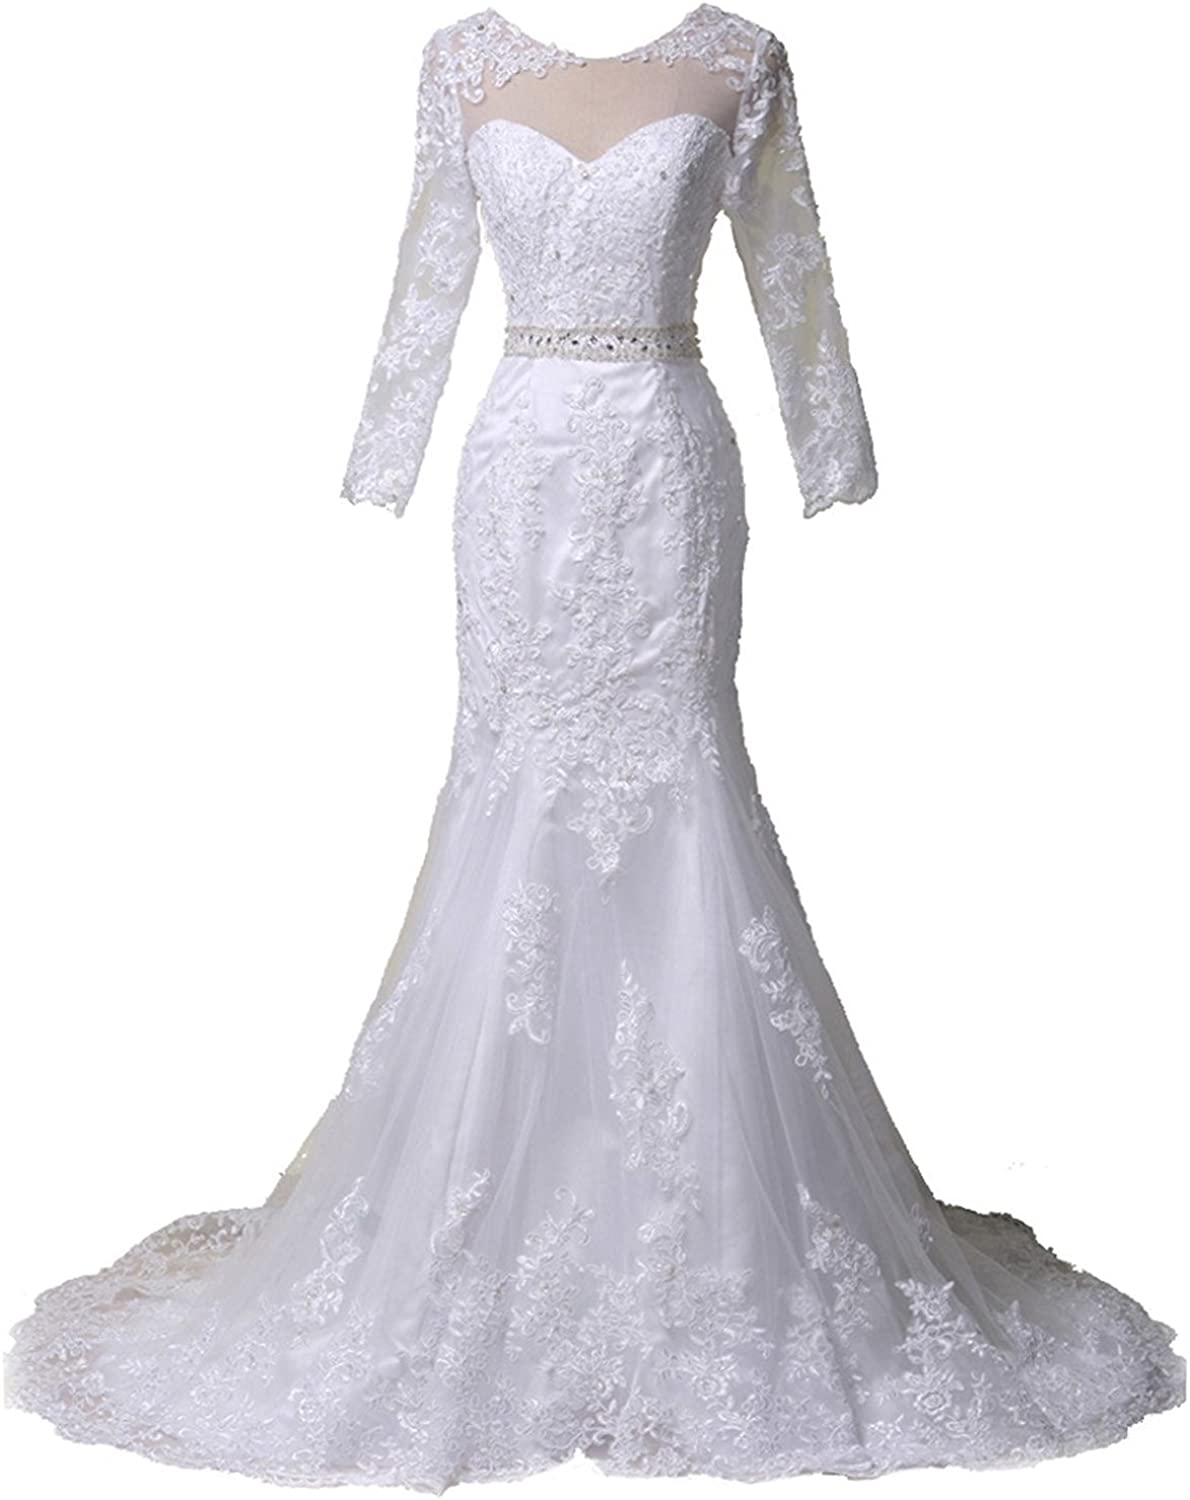 JAEDEN Lace Wedding Dress for Bride with Long Sleeves Bridal Gown with Train